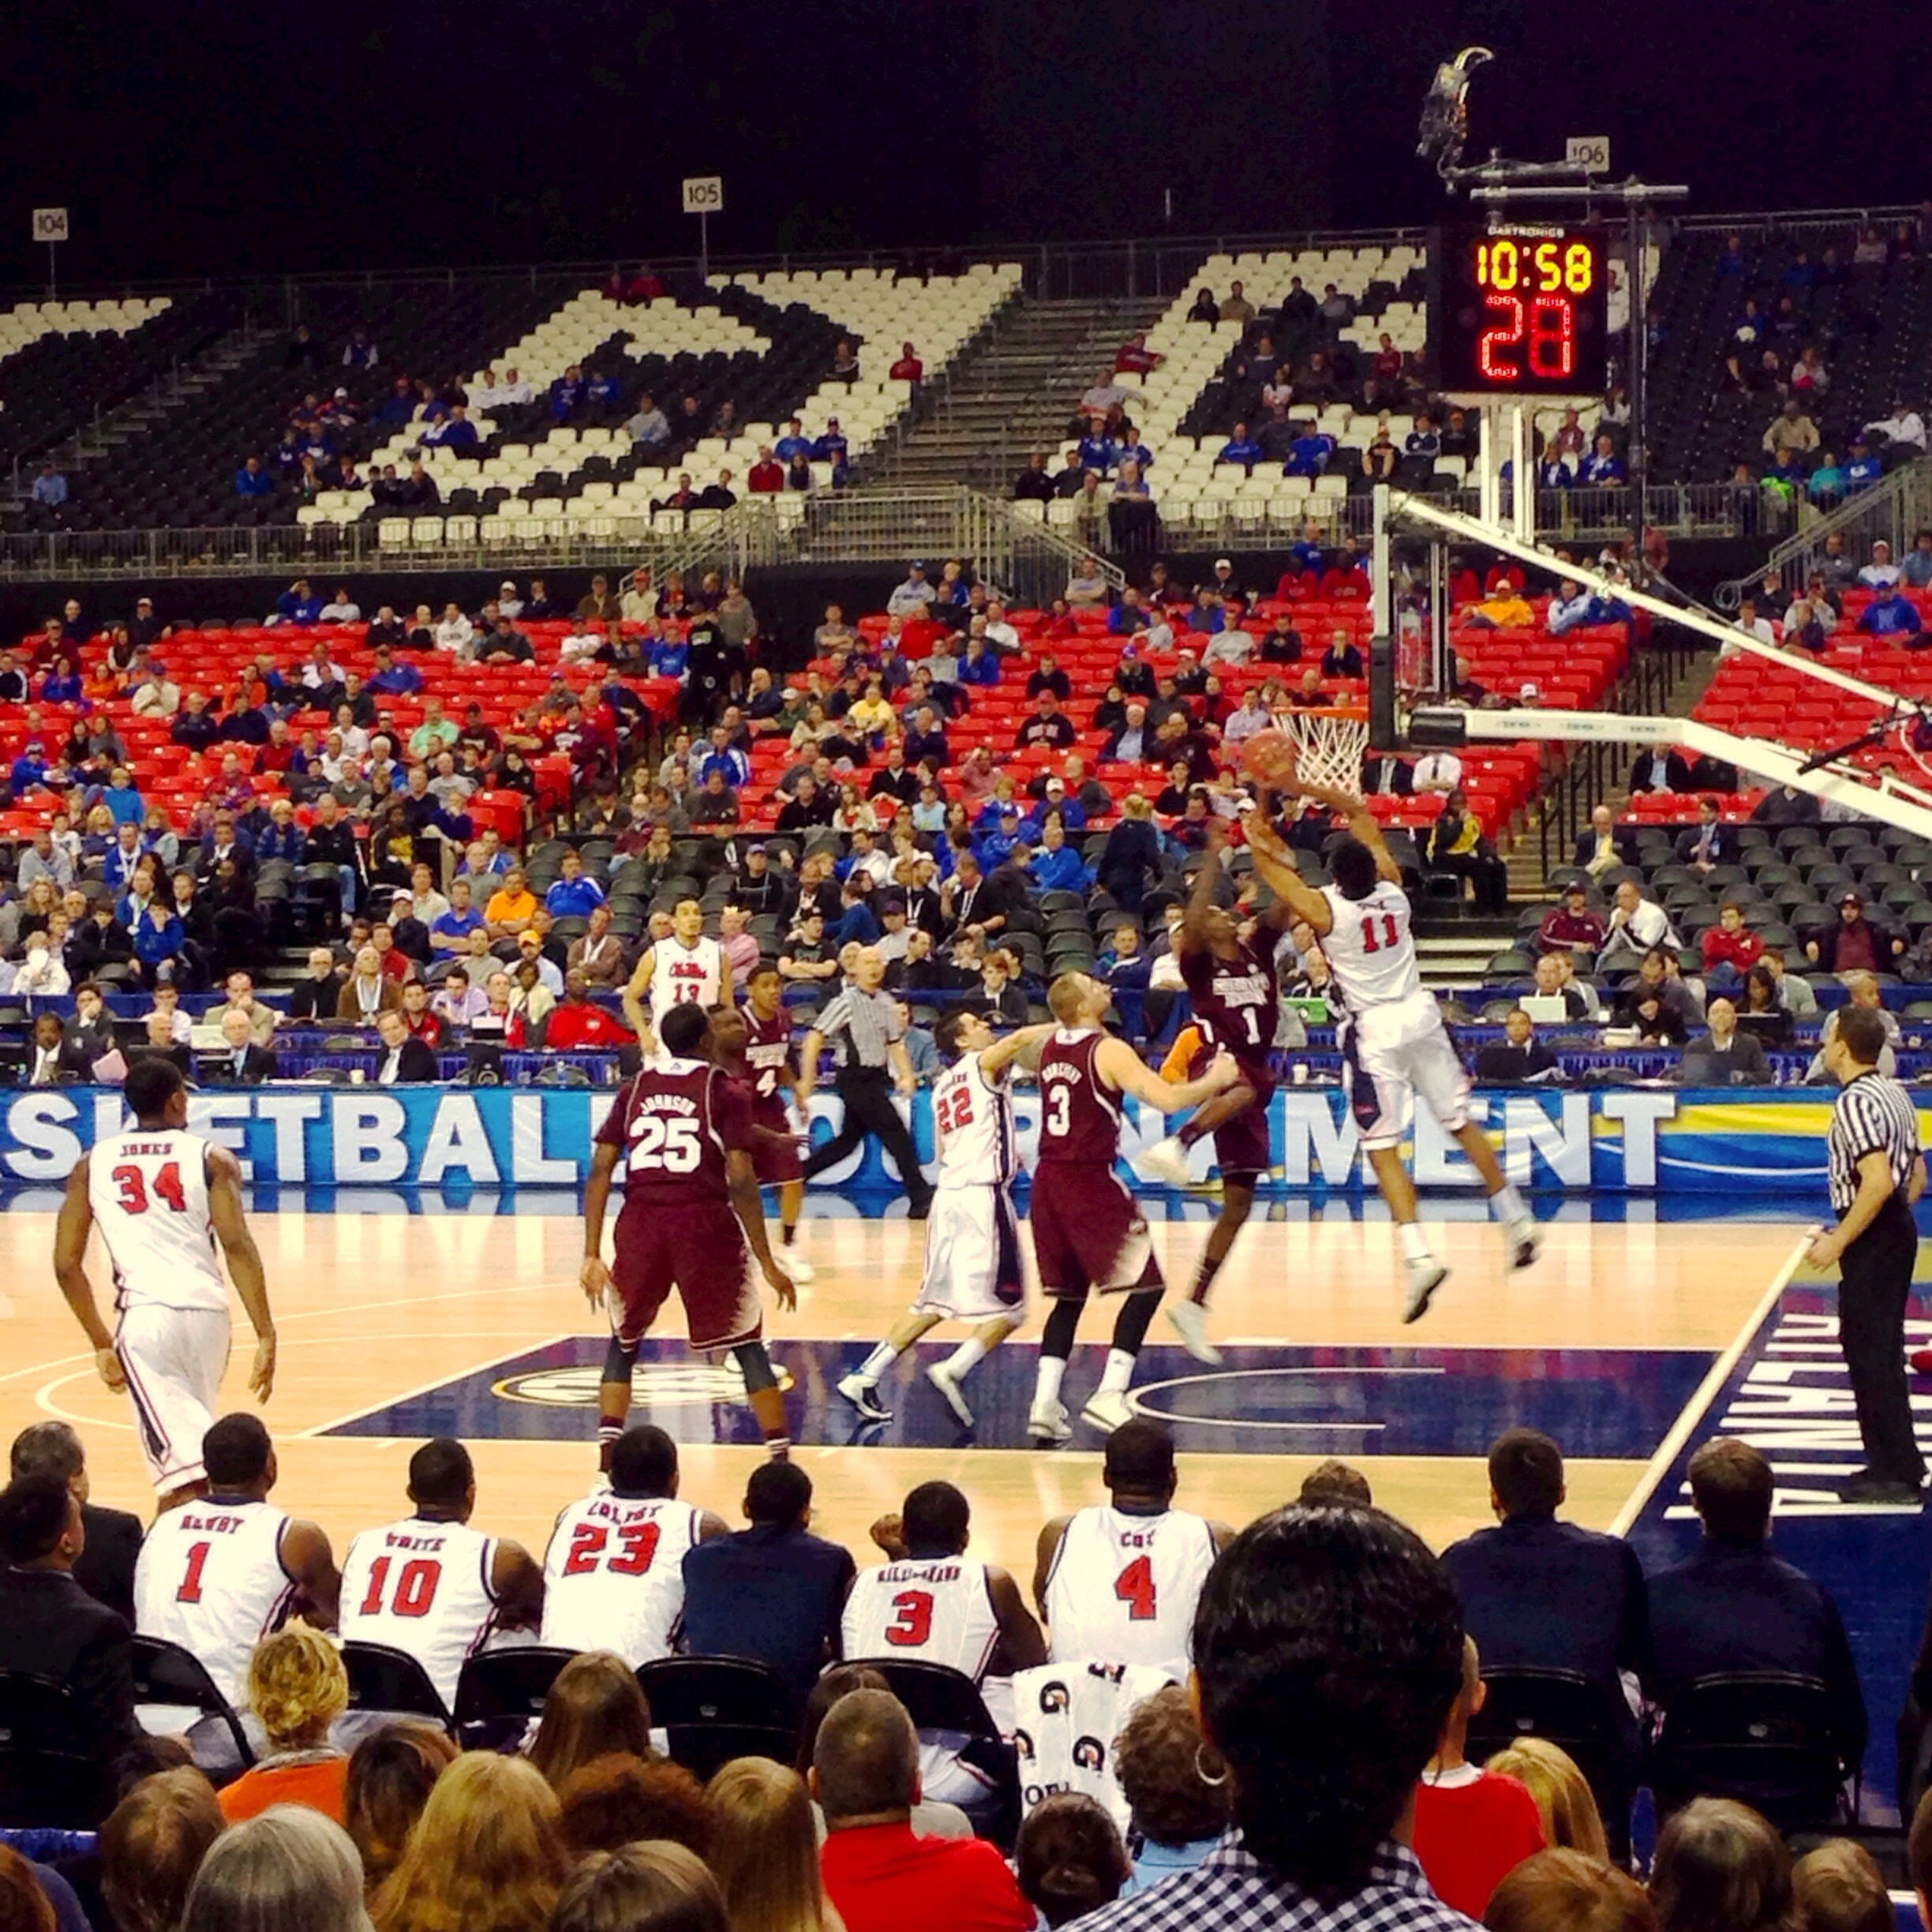 Ole Miss vs. Mississippi State